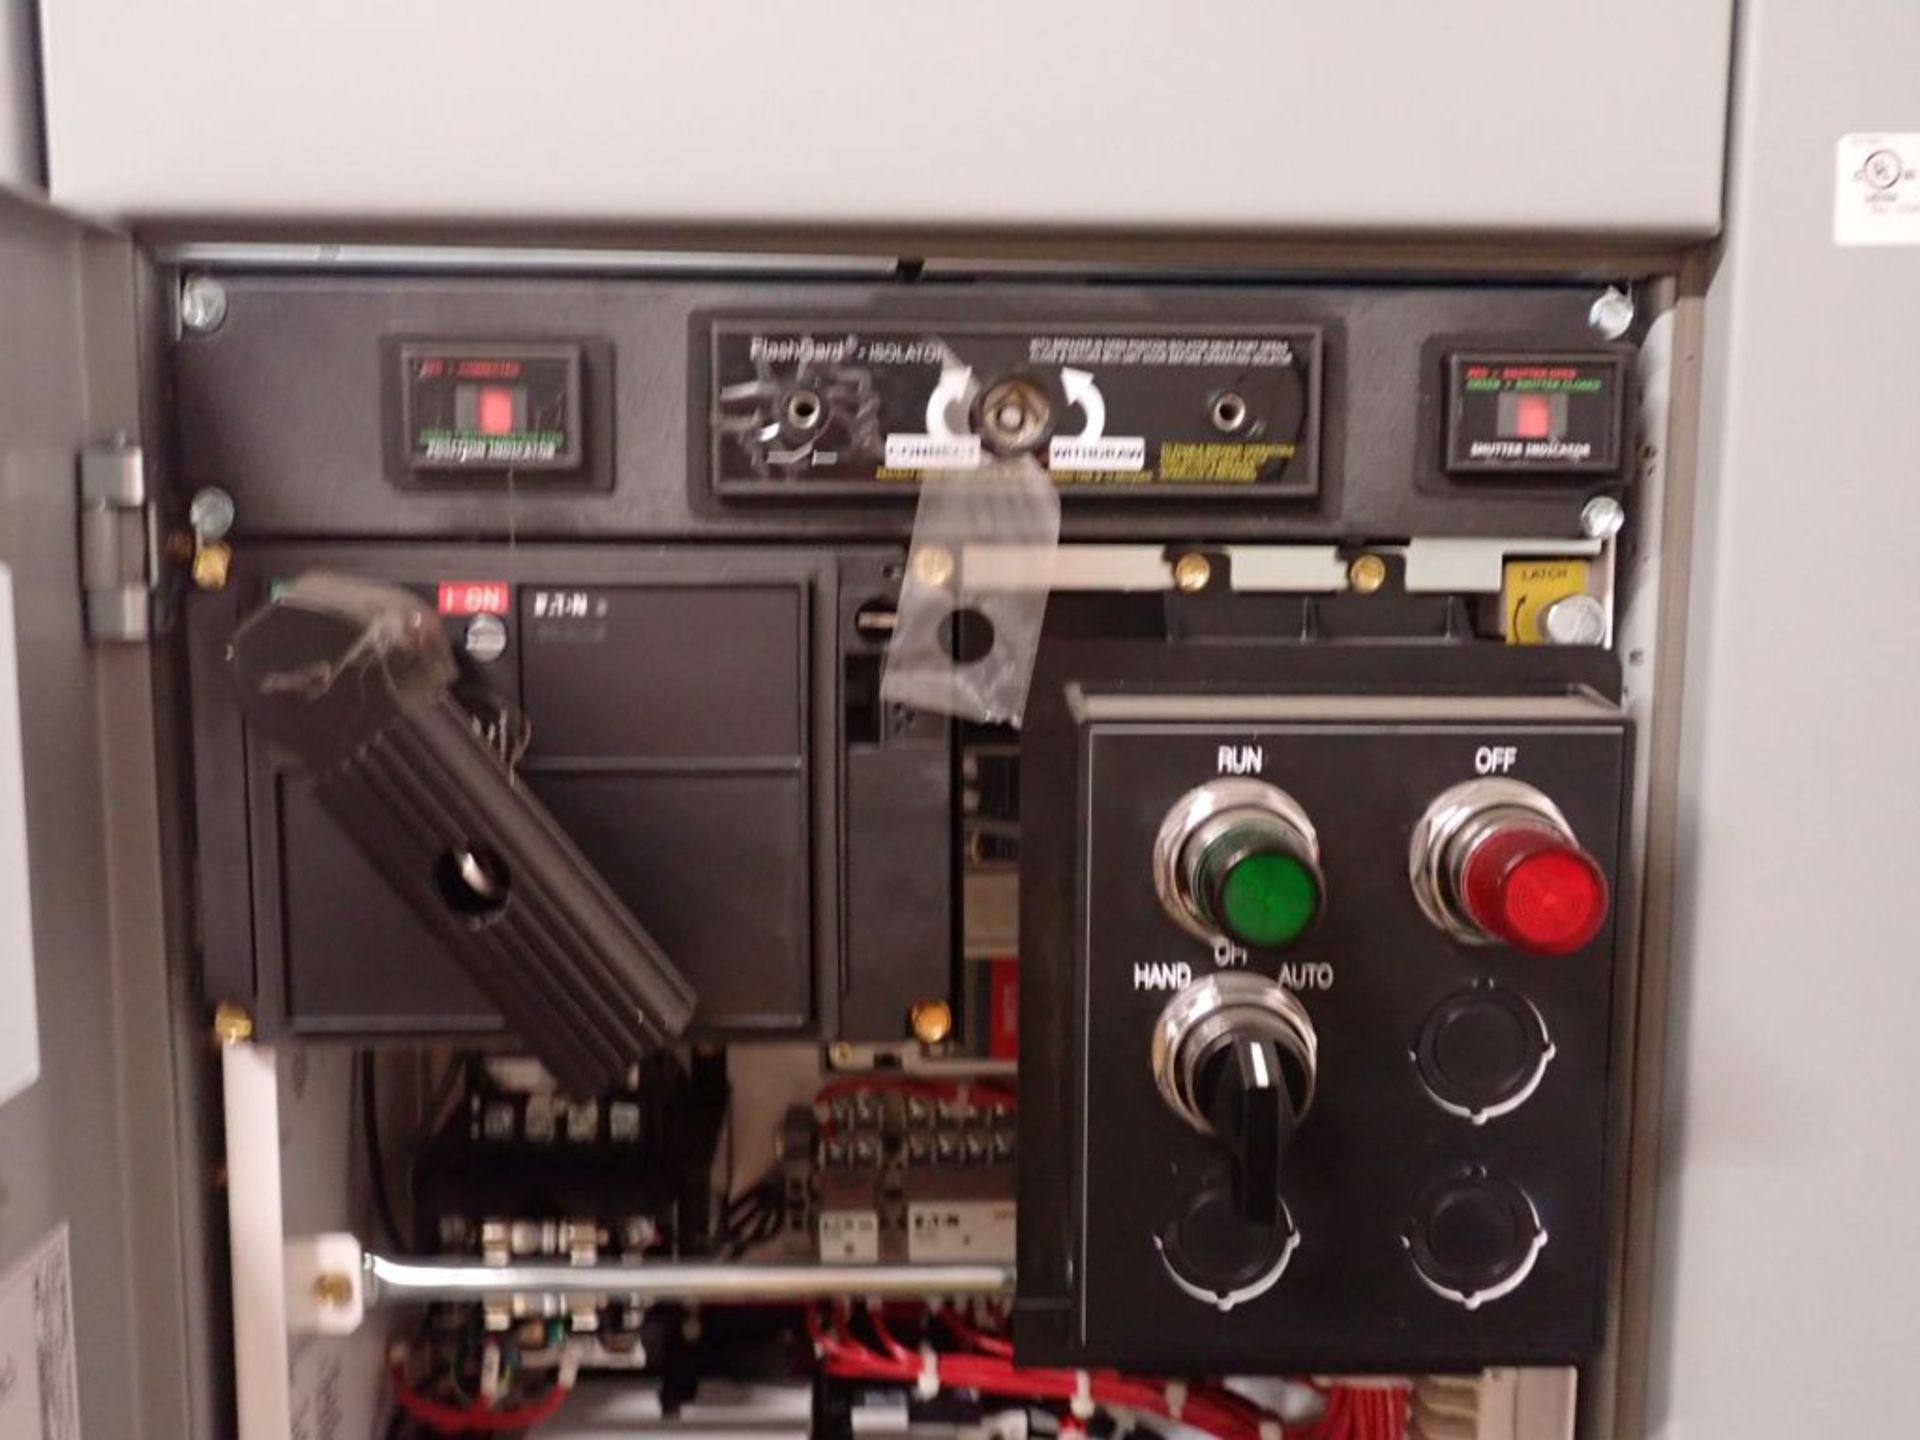 Eaton Freedom 2100 Series Motor Control Center | (11) F206-30A-10HP; (5) F206-15A-10HP; (1) SVX900- - Image 83 of 102